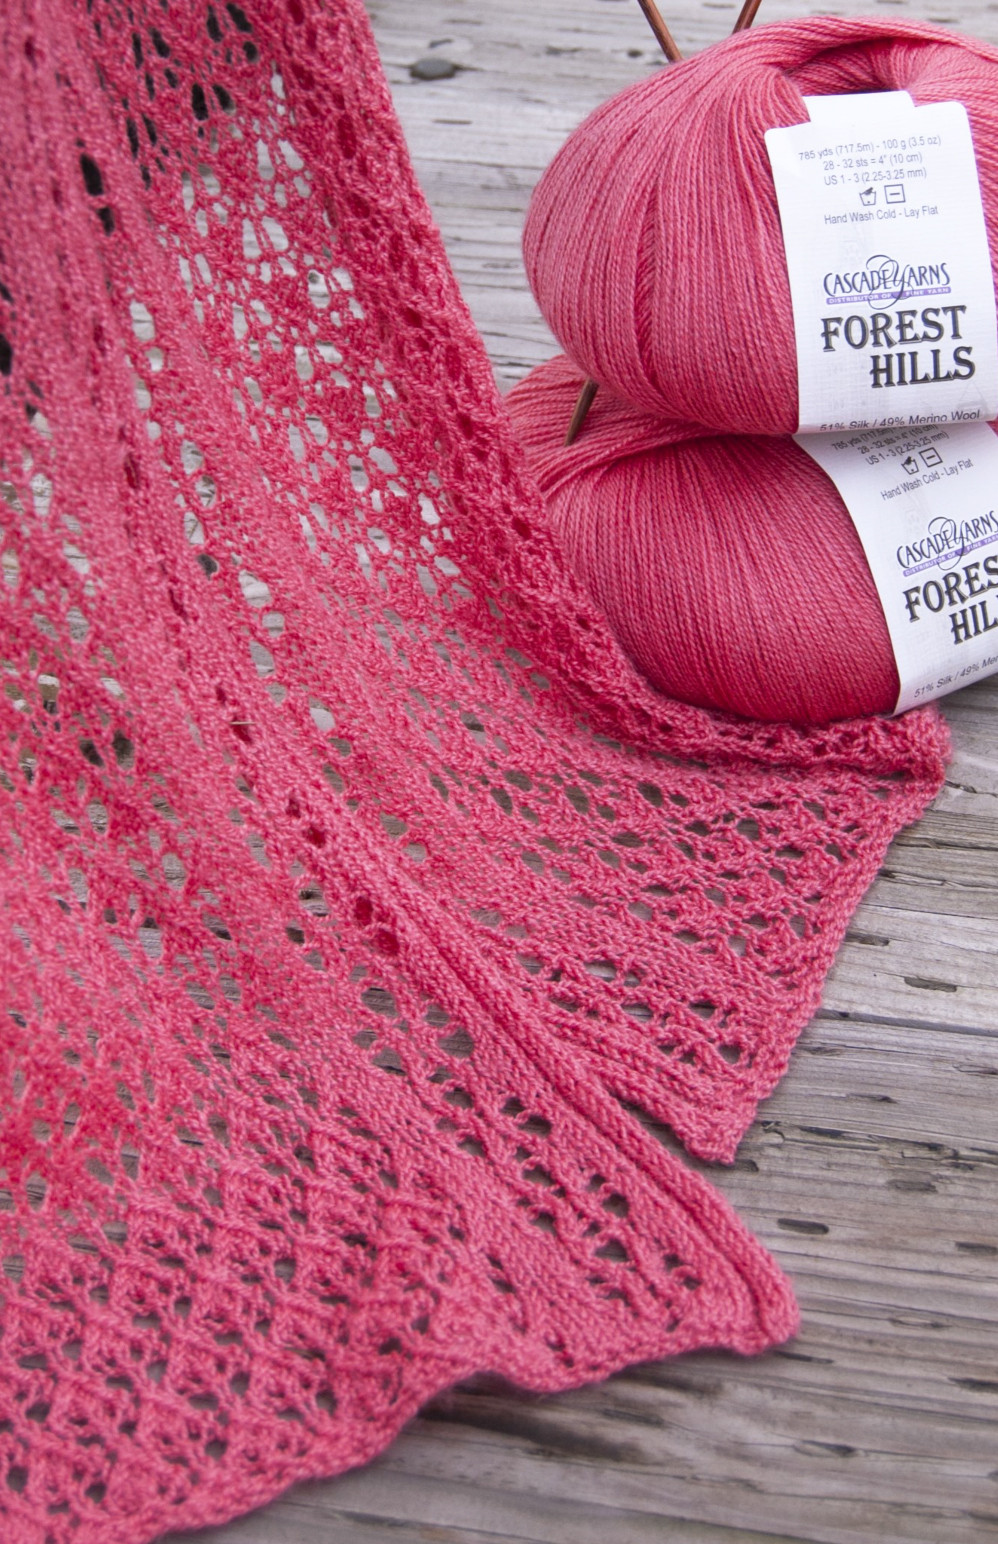 Inspirational Lacy Scarf Free Crochet Pattern Free Knitting and Crochet Patterns Of Marvelous 44 Ideas Free Knitting and Crochet Patterns